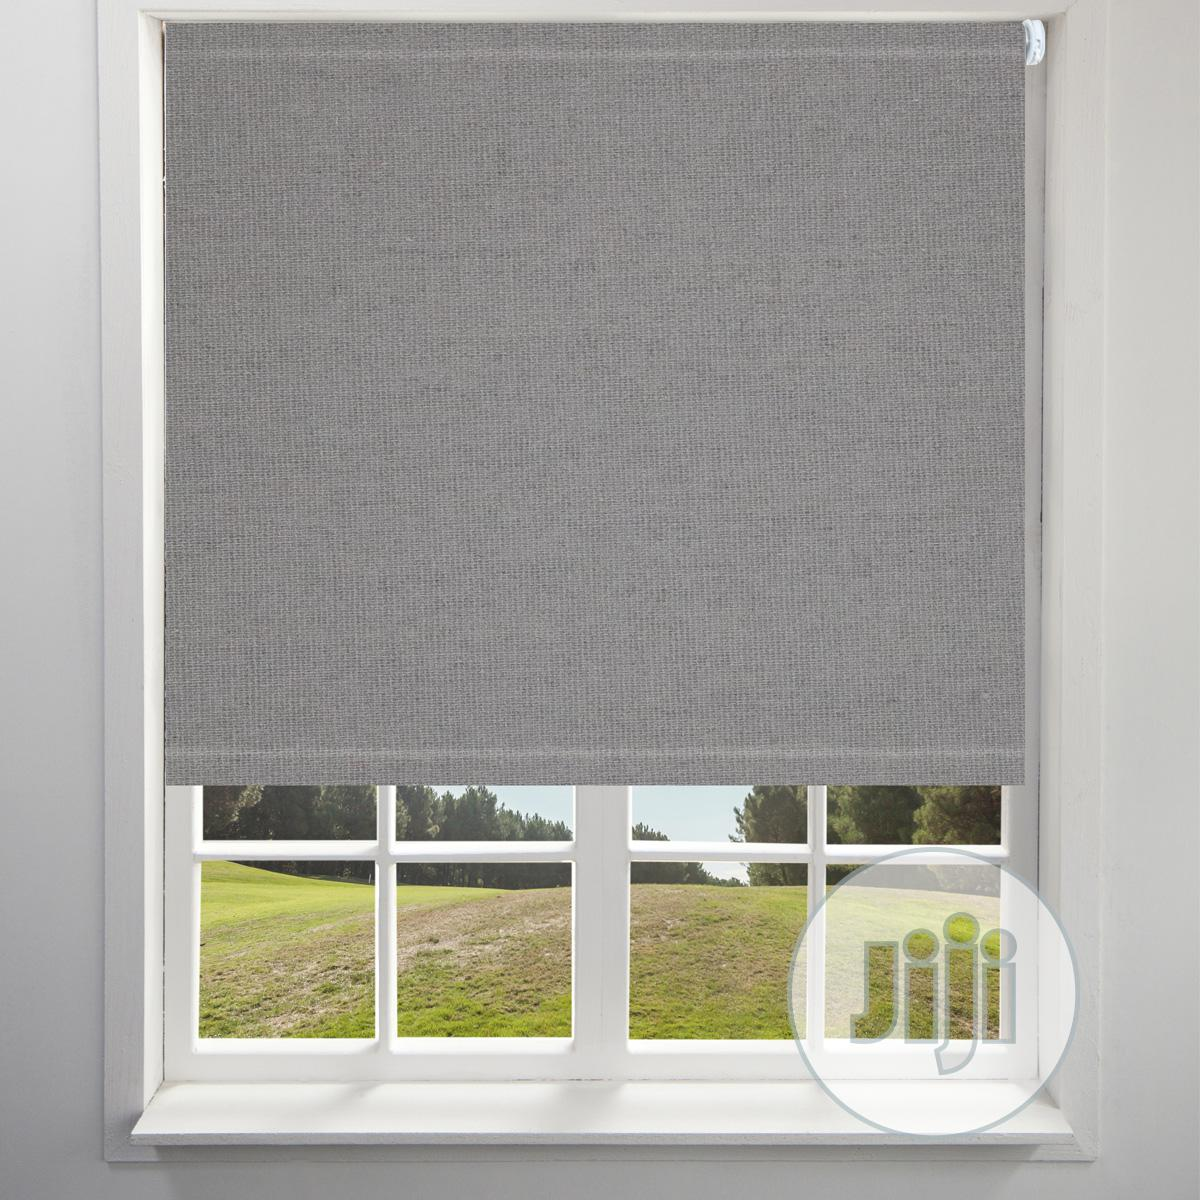 Roller Window Blinds | Home Accessories for sale in Osogbo, Osun State, Nigeria